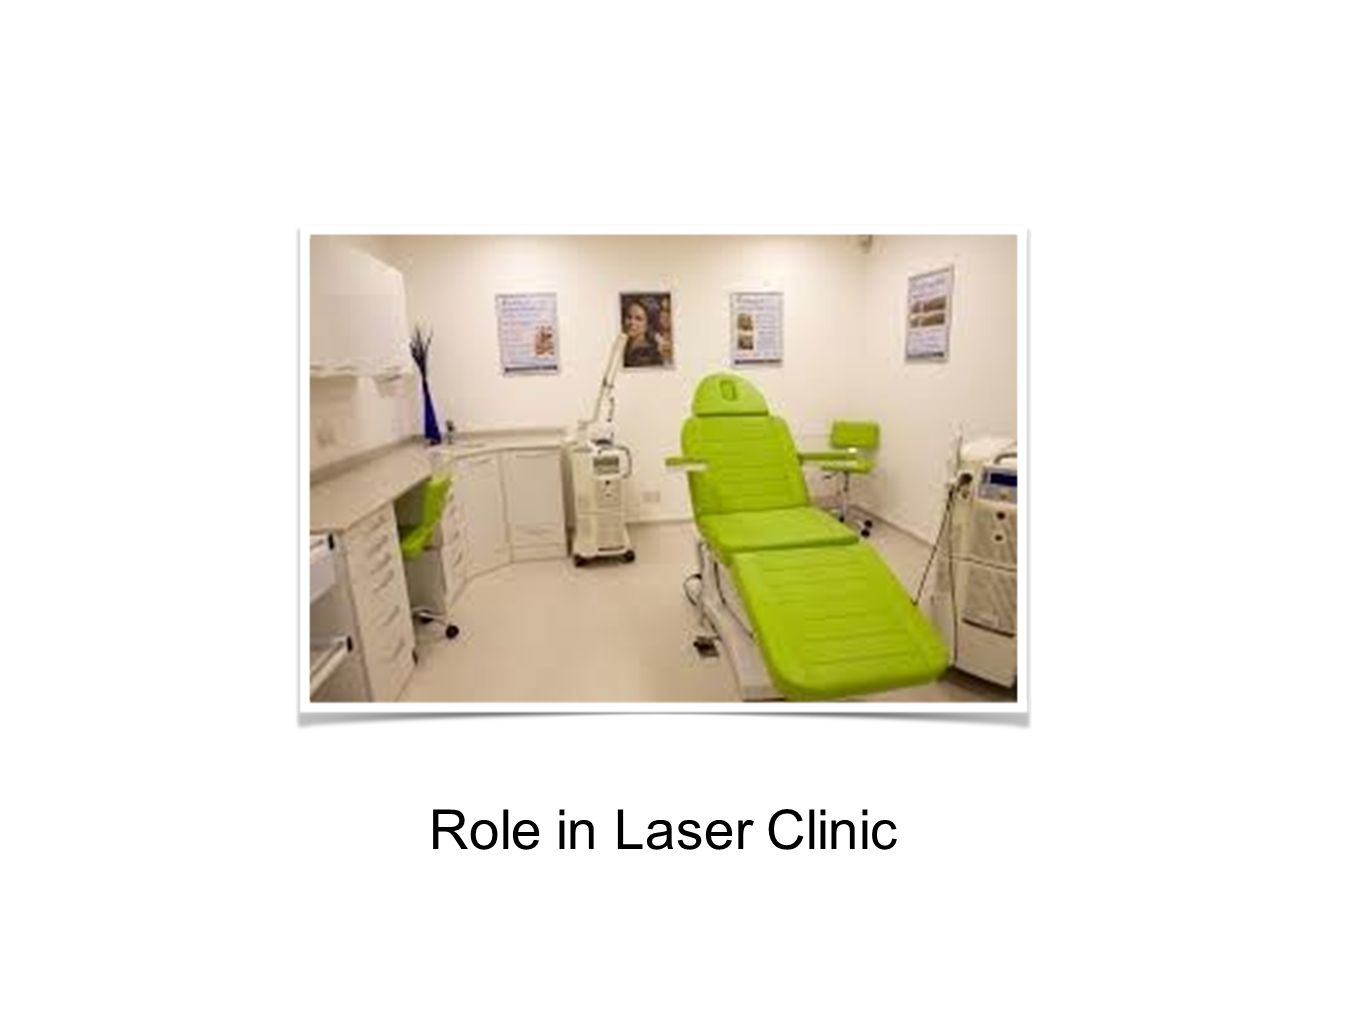 Role in Laser Clinic